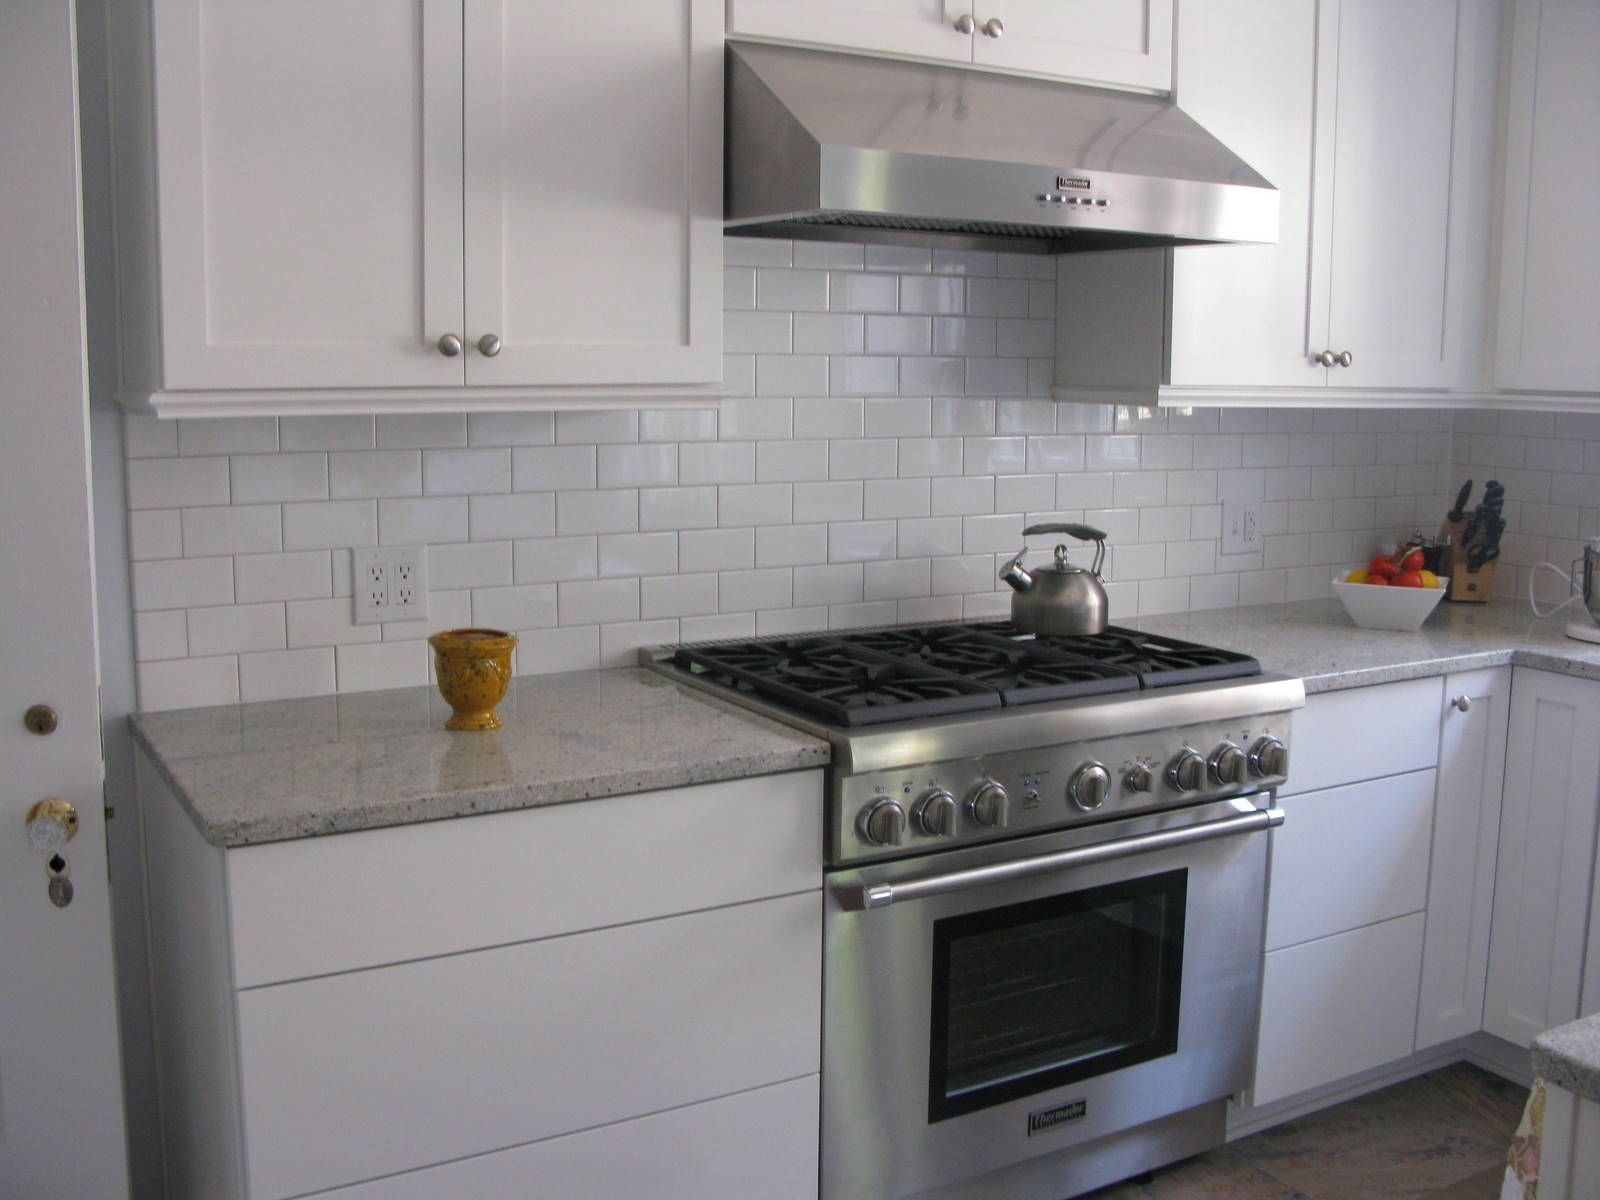 Grouting Kitchen Backsplash Property Fair And Now The After  Grey Grout White Subway Tiles And Subway Tiles Review